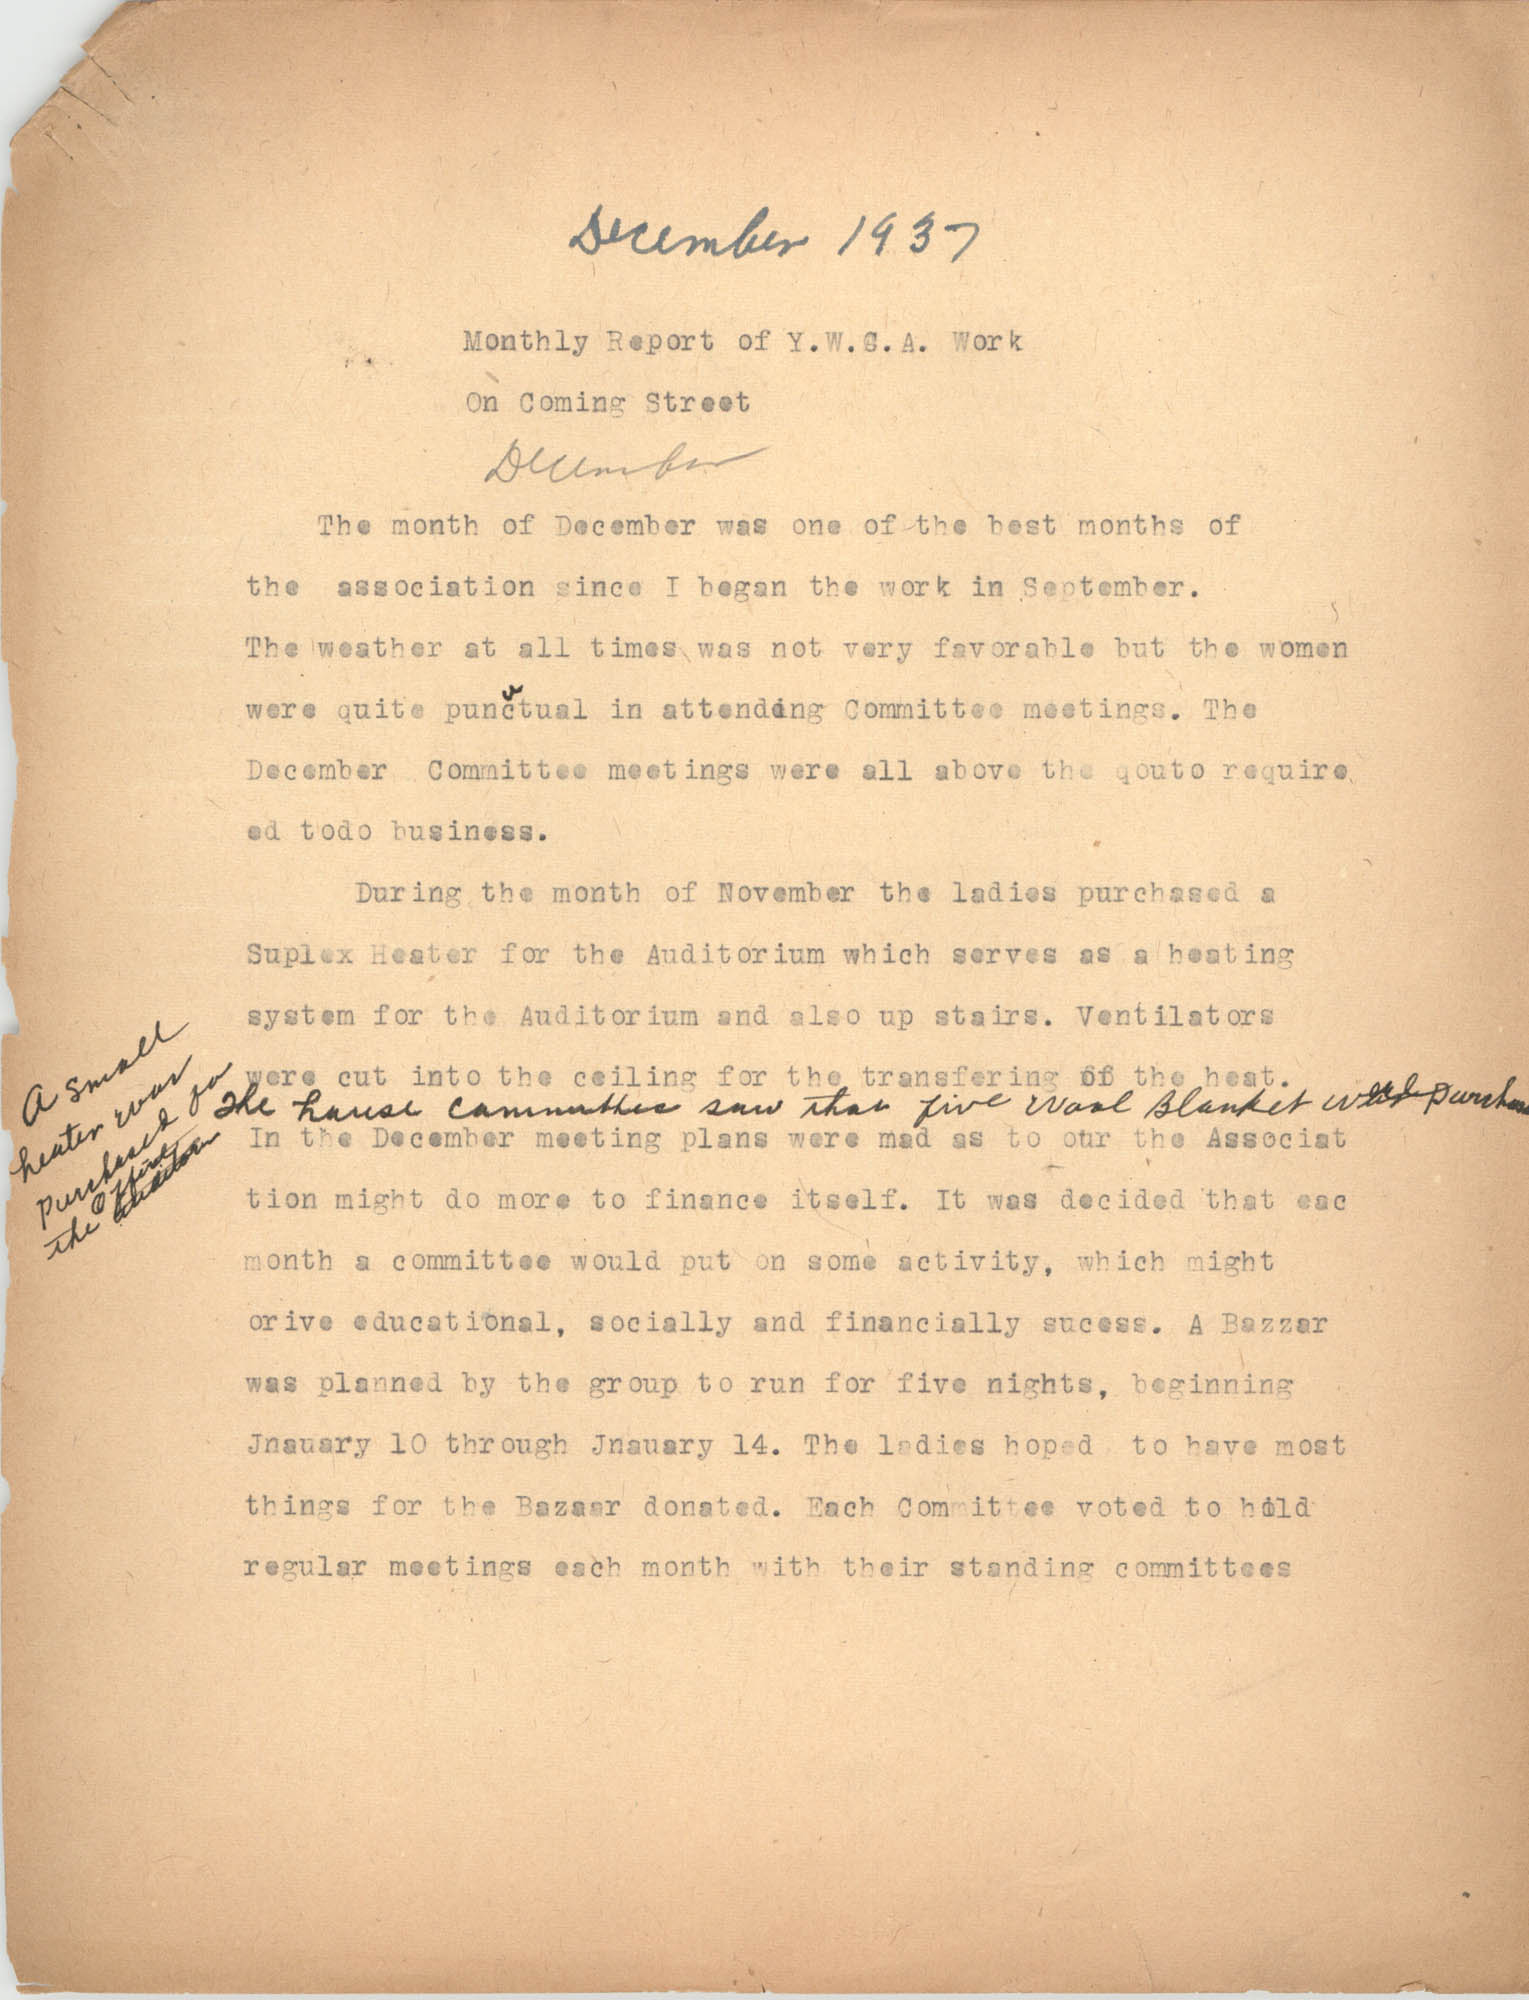 Monthly Report for the Coming Street Y.W.C.A., December 1937